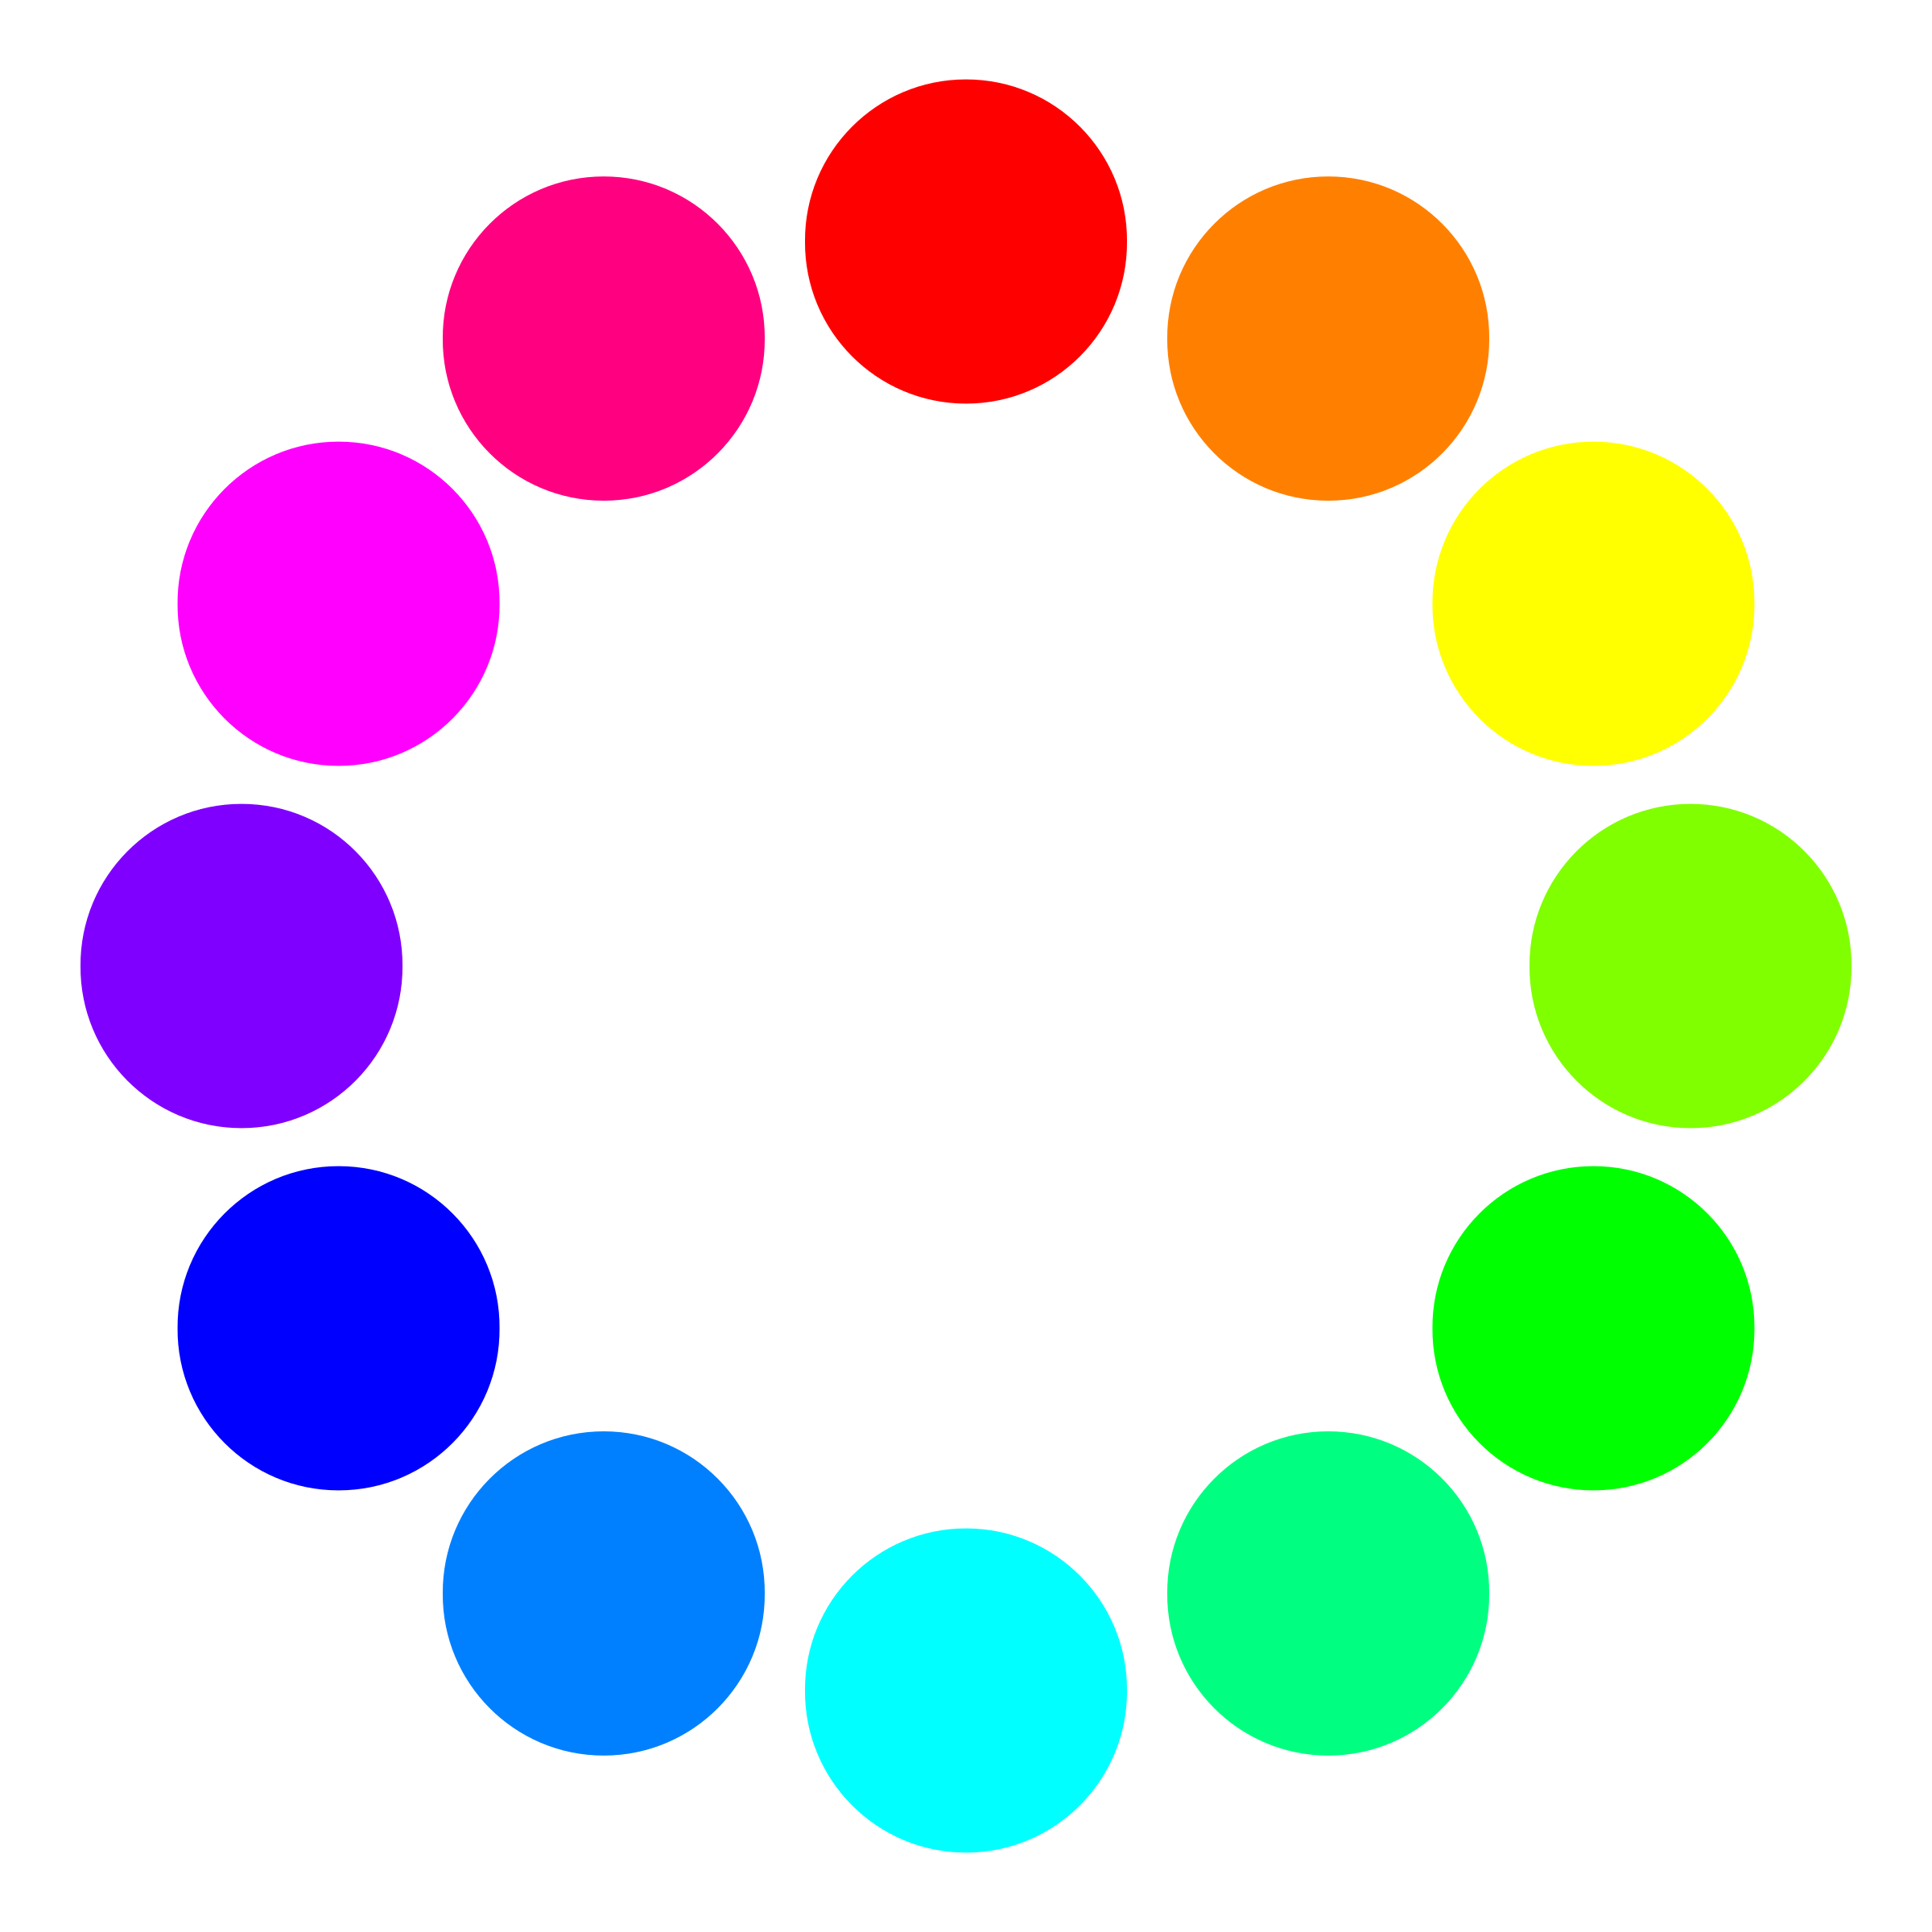 Color circle png. Circles icons free